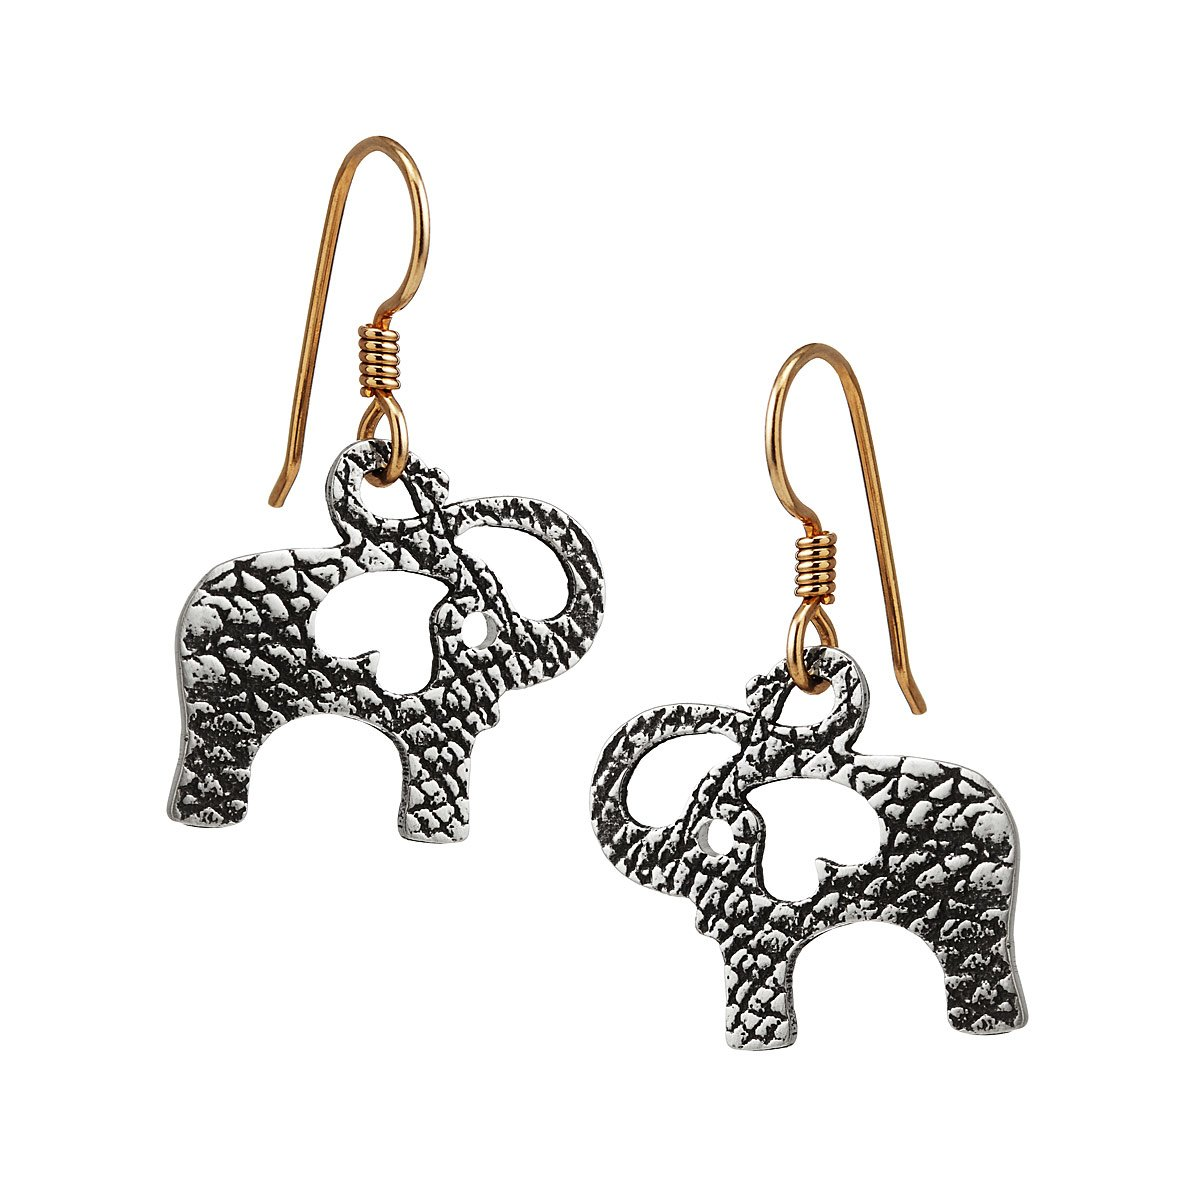 mn collections sale dancing greatergood elephant products earrings